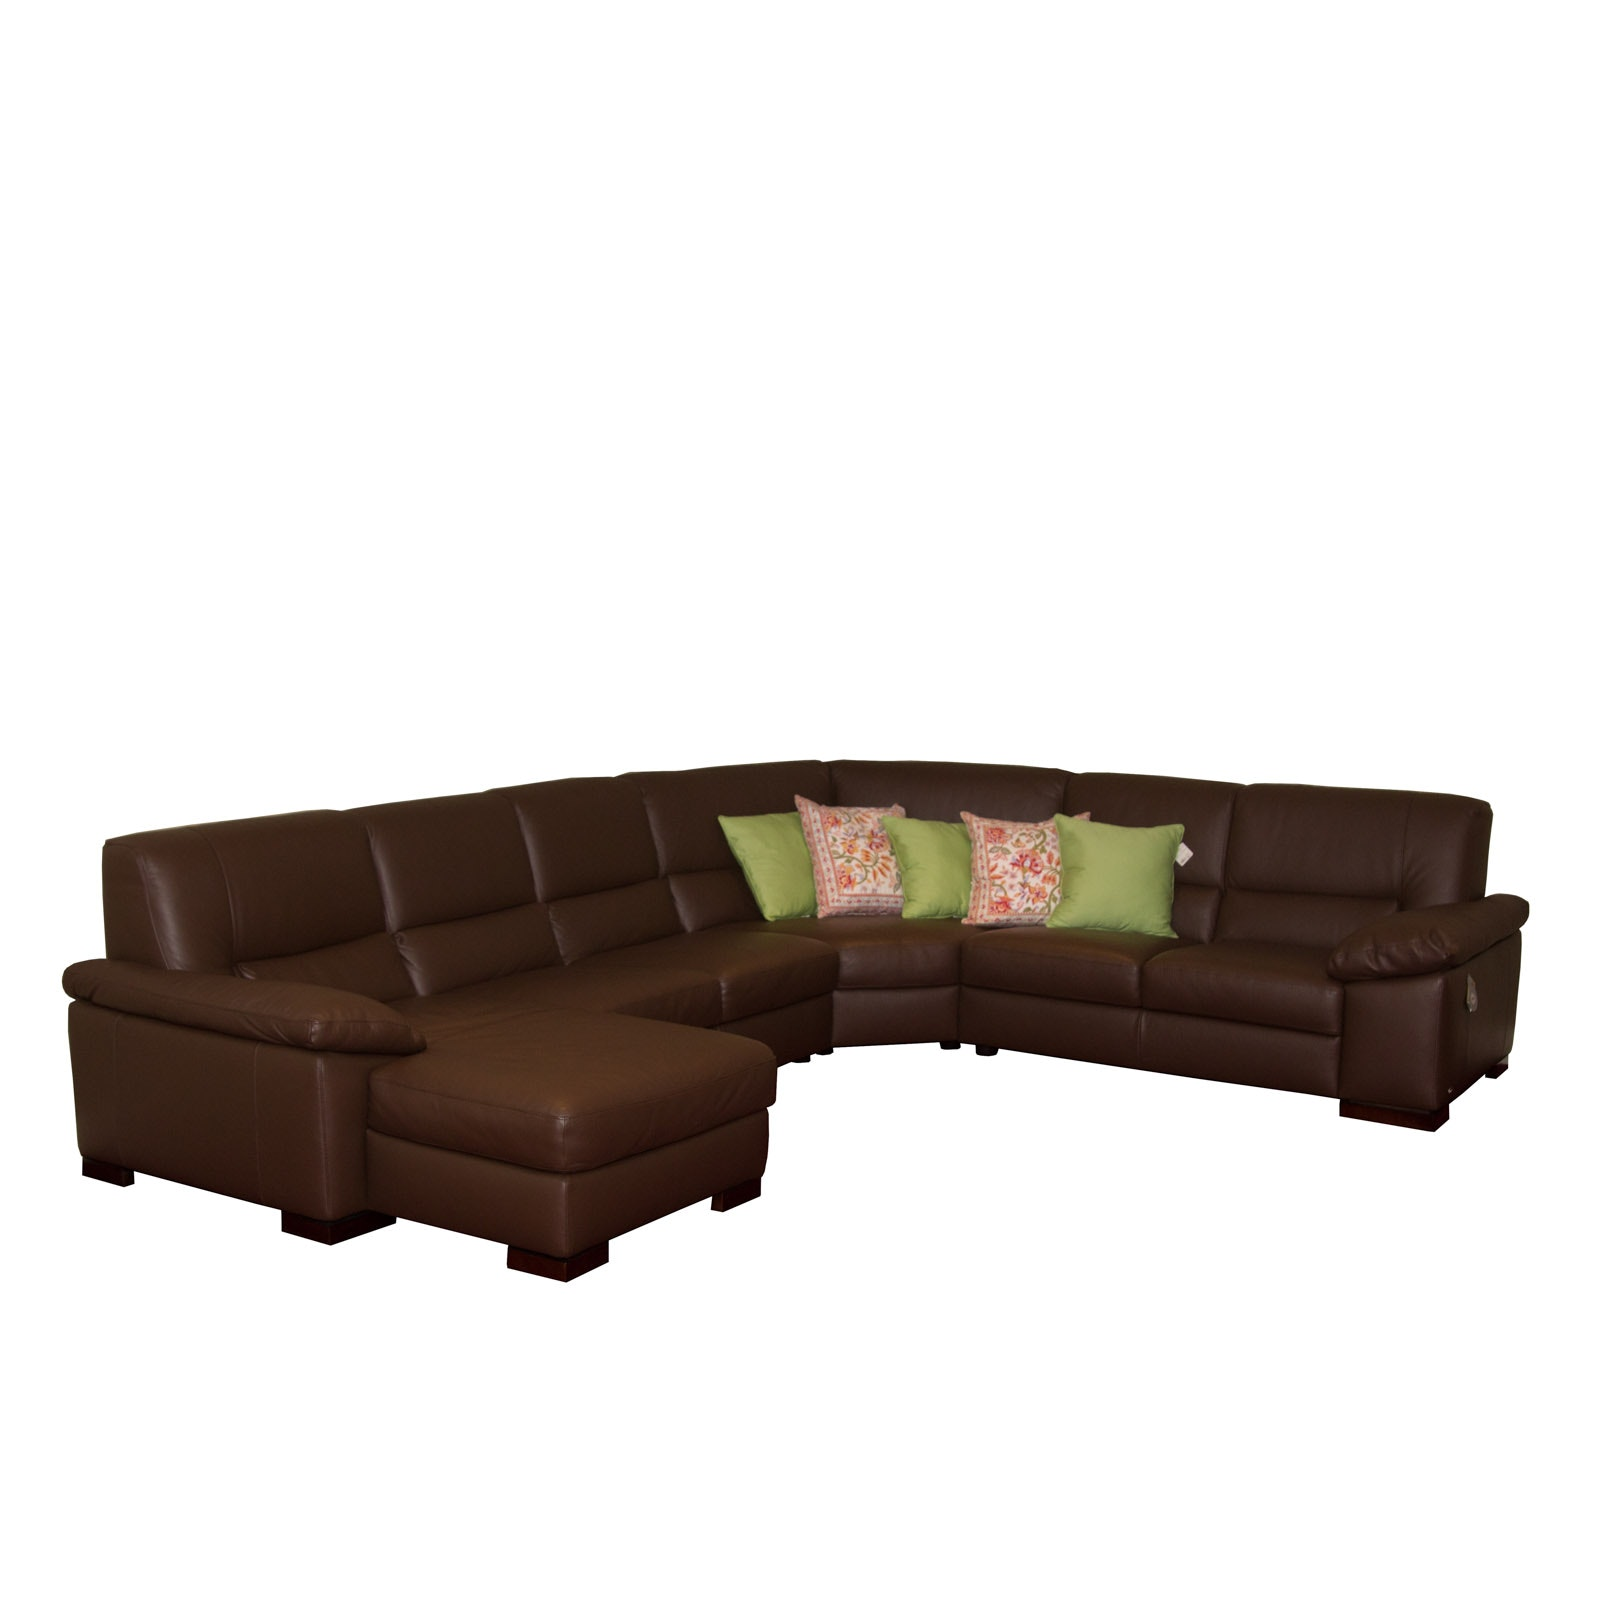 Superieur Italsofa Chocolate Brown Leather Sectional Sofa ...